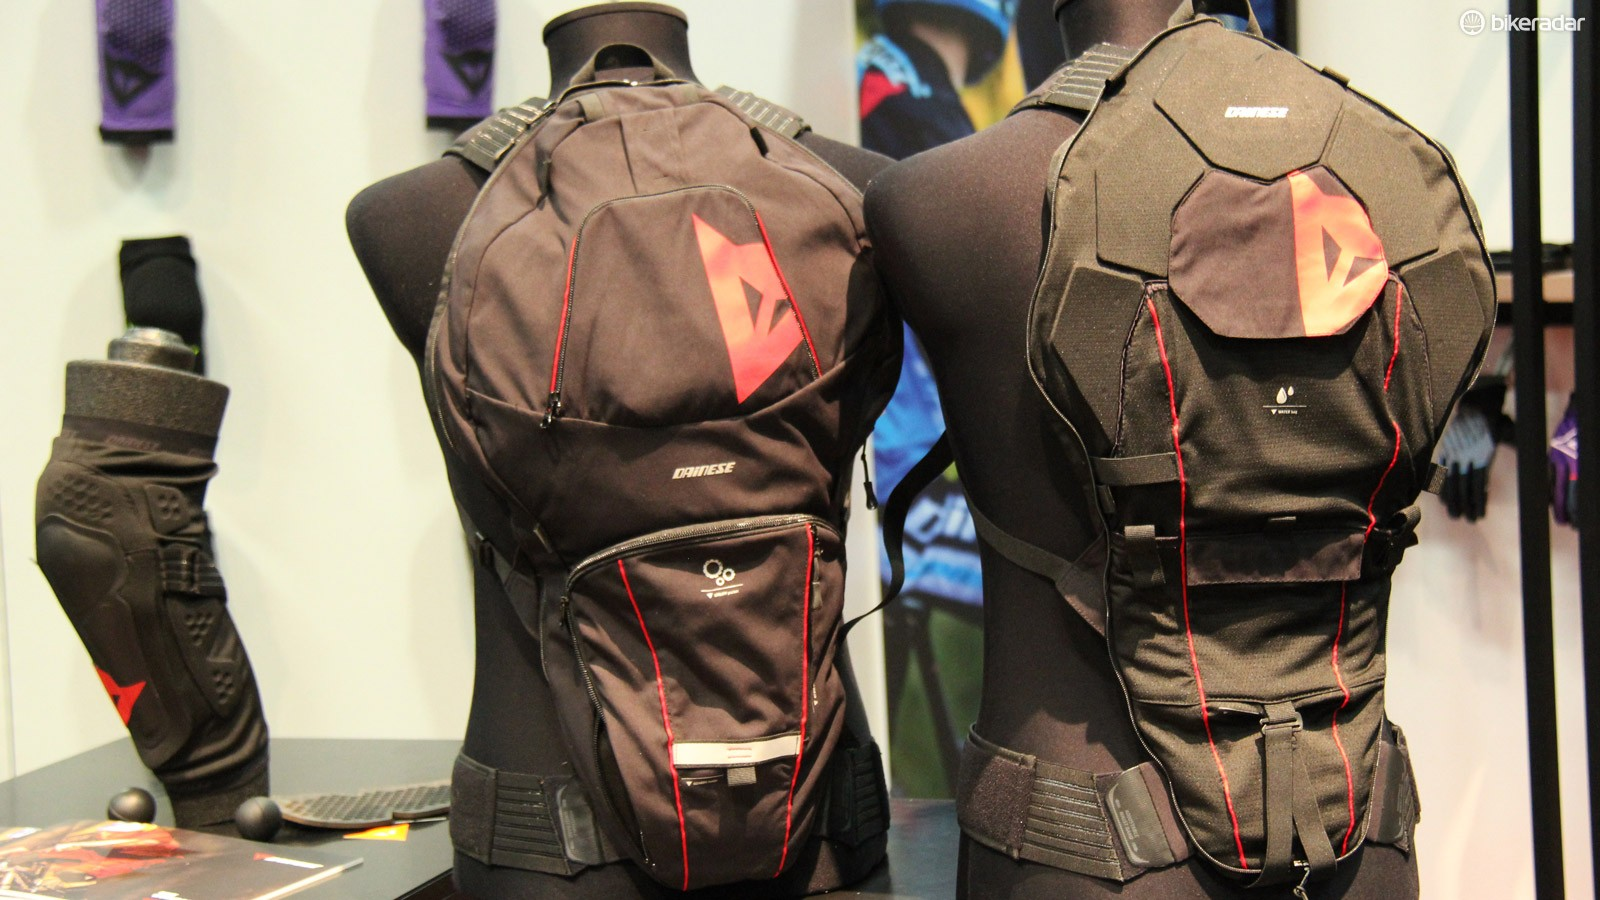 The US$199 Dainese Pro Pack features a two-peice design that allows the wearer to decide how much storage they need